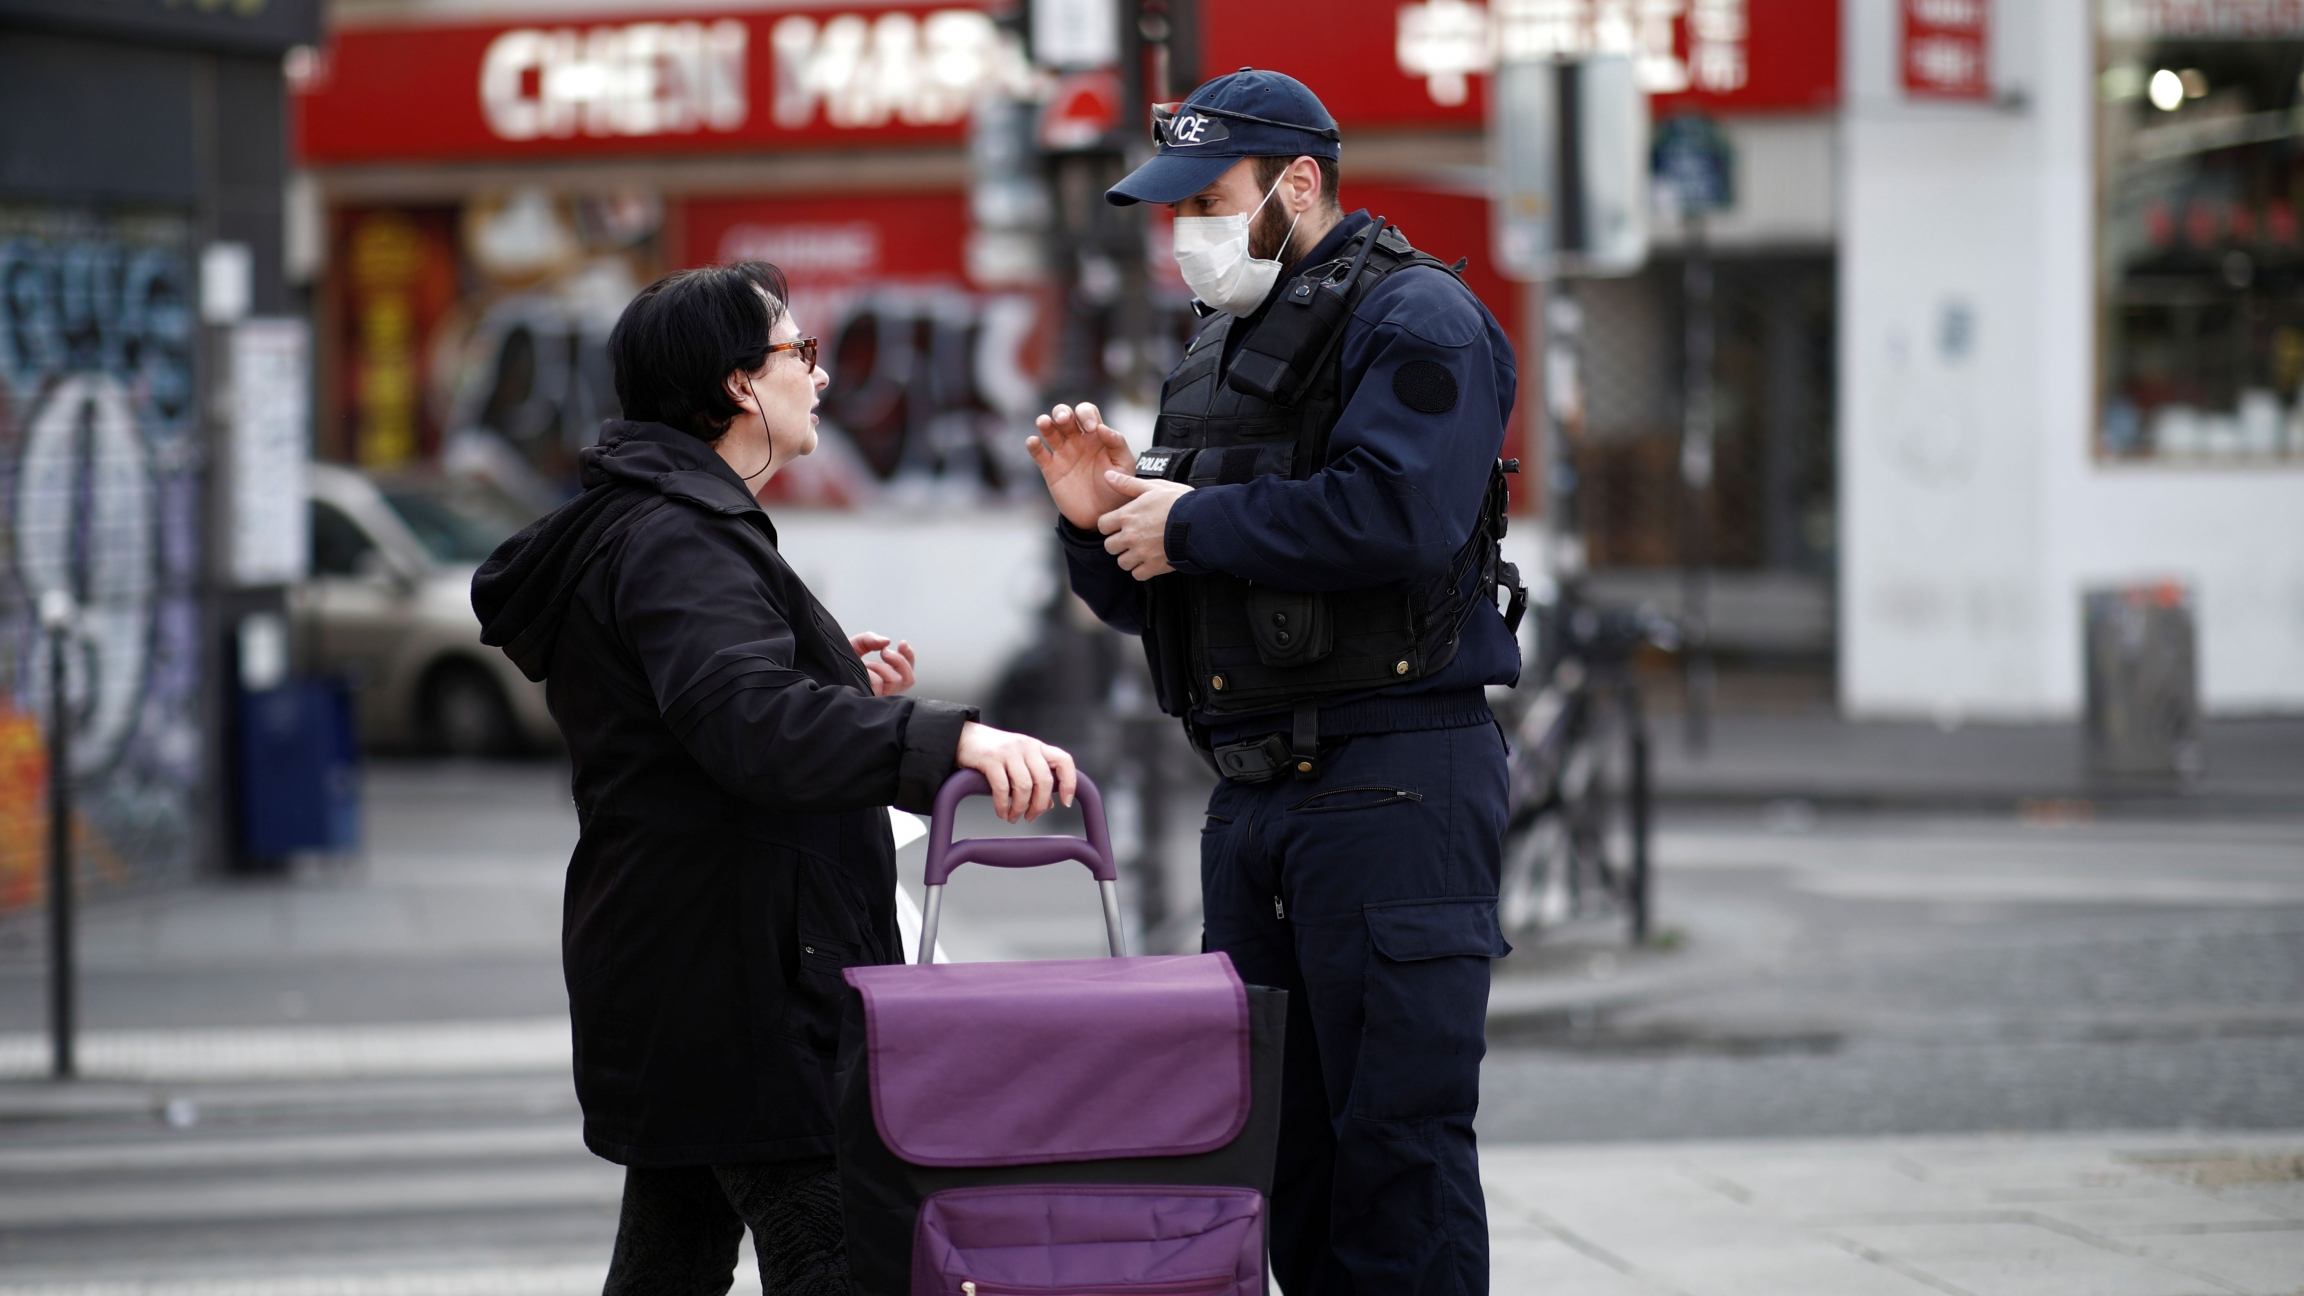 A French police officer controls a bystander in Belleville neighborhood as a lockdown imposed to slow the rate of the coronavirus disease (COVID-19) contagion started midday March 17.